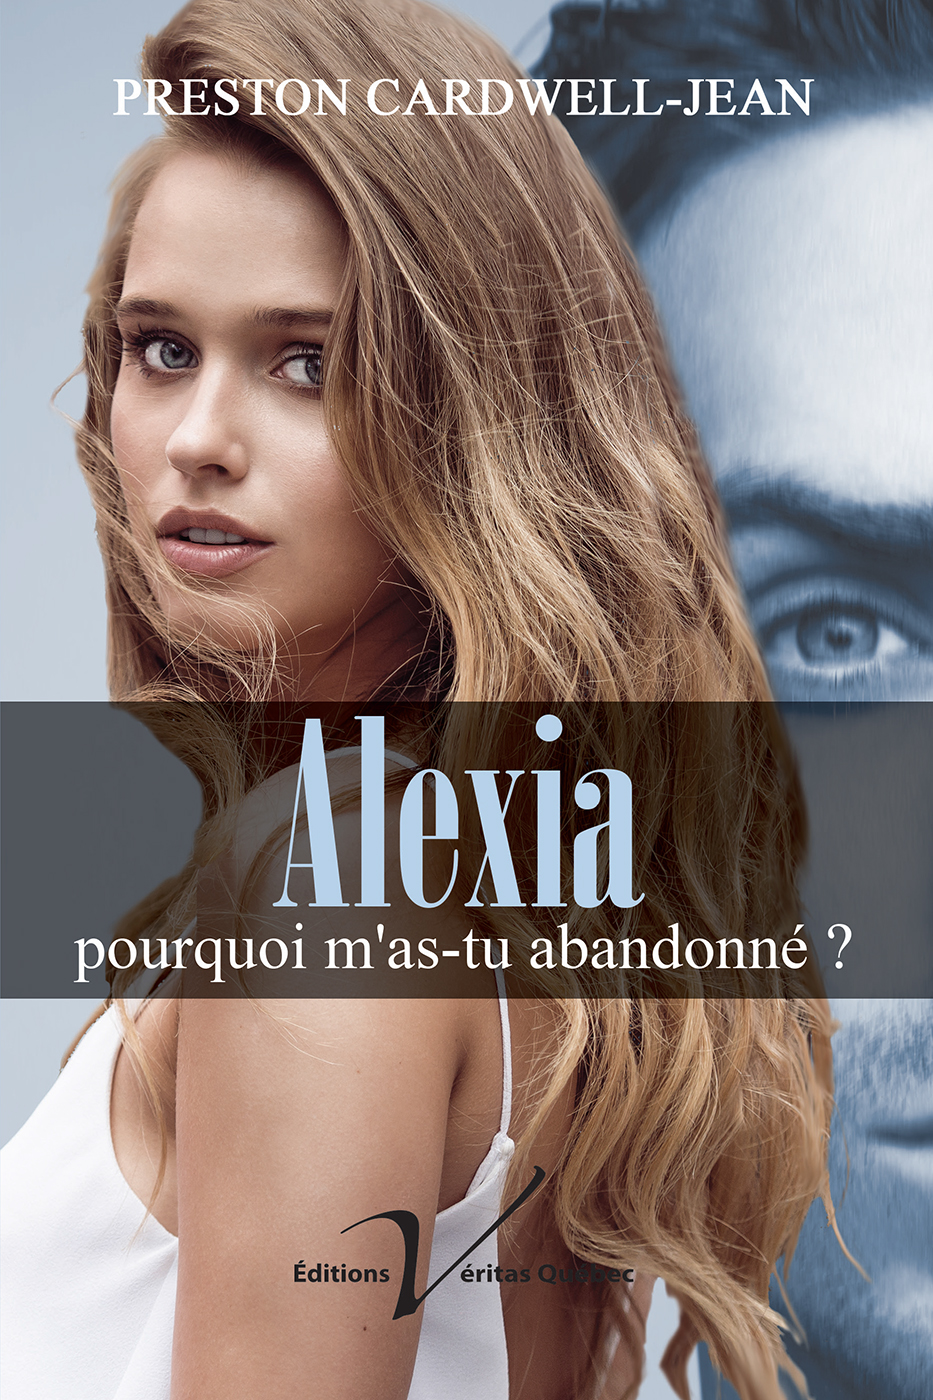 Alexia, pourquoi m'as-tu ab...